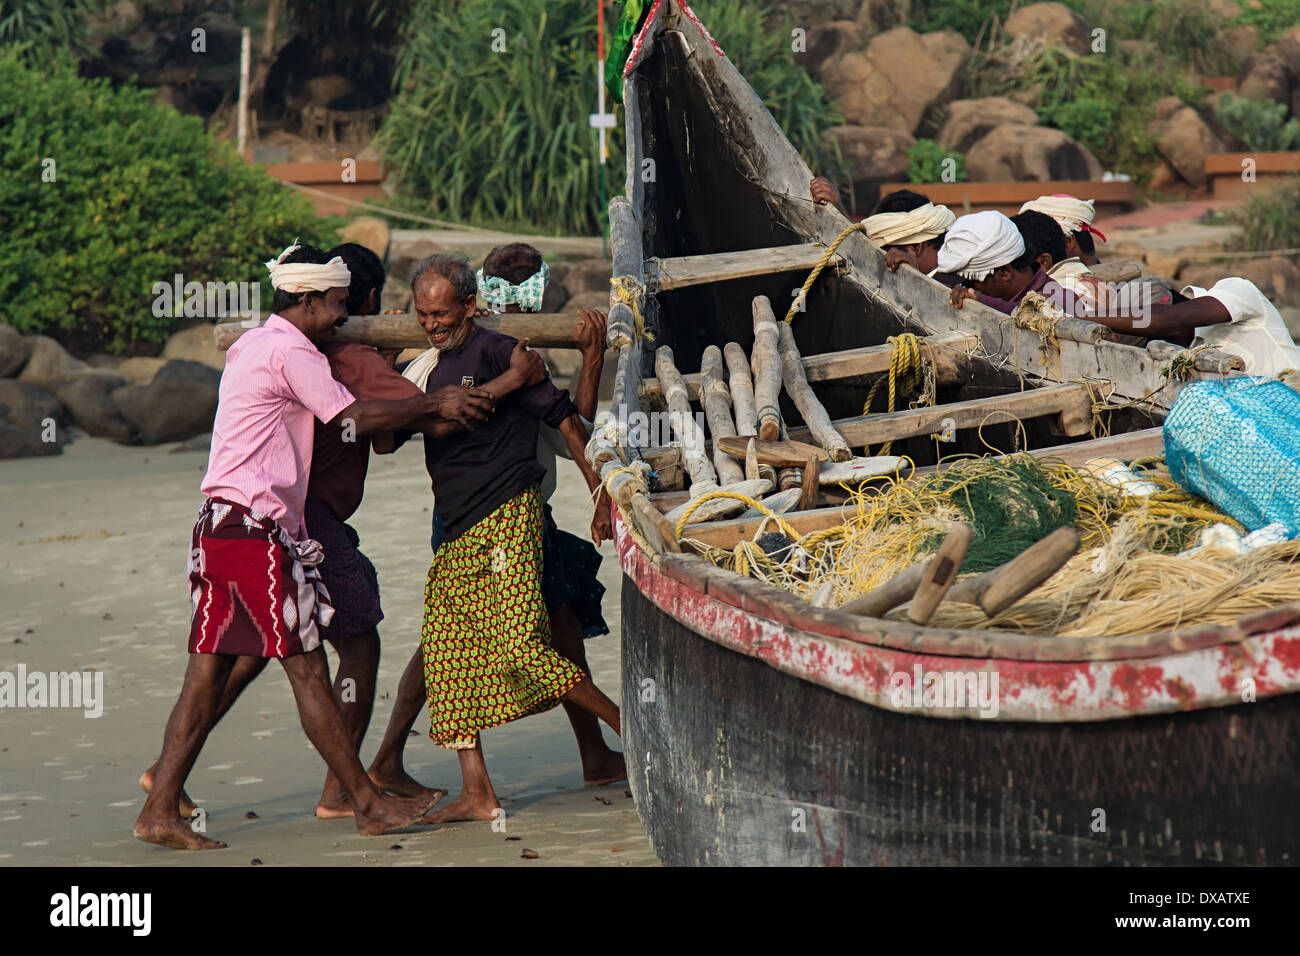 Fishermen moving their fishing boat into the sea at Lighthouse Beach in Kovalam, Kerala, India Stock Photo